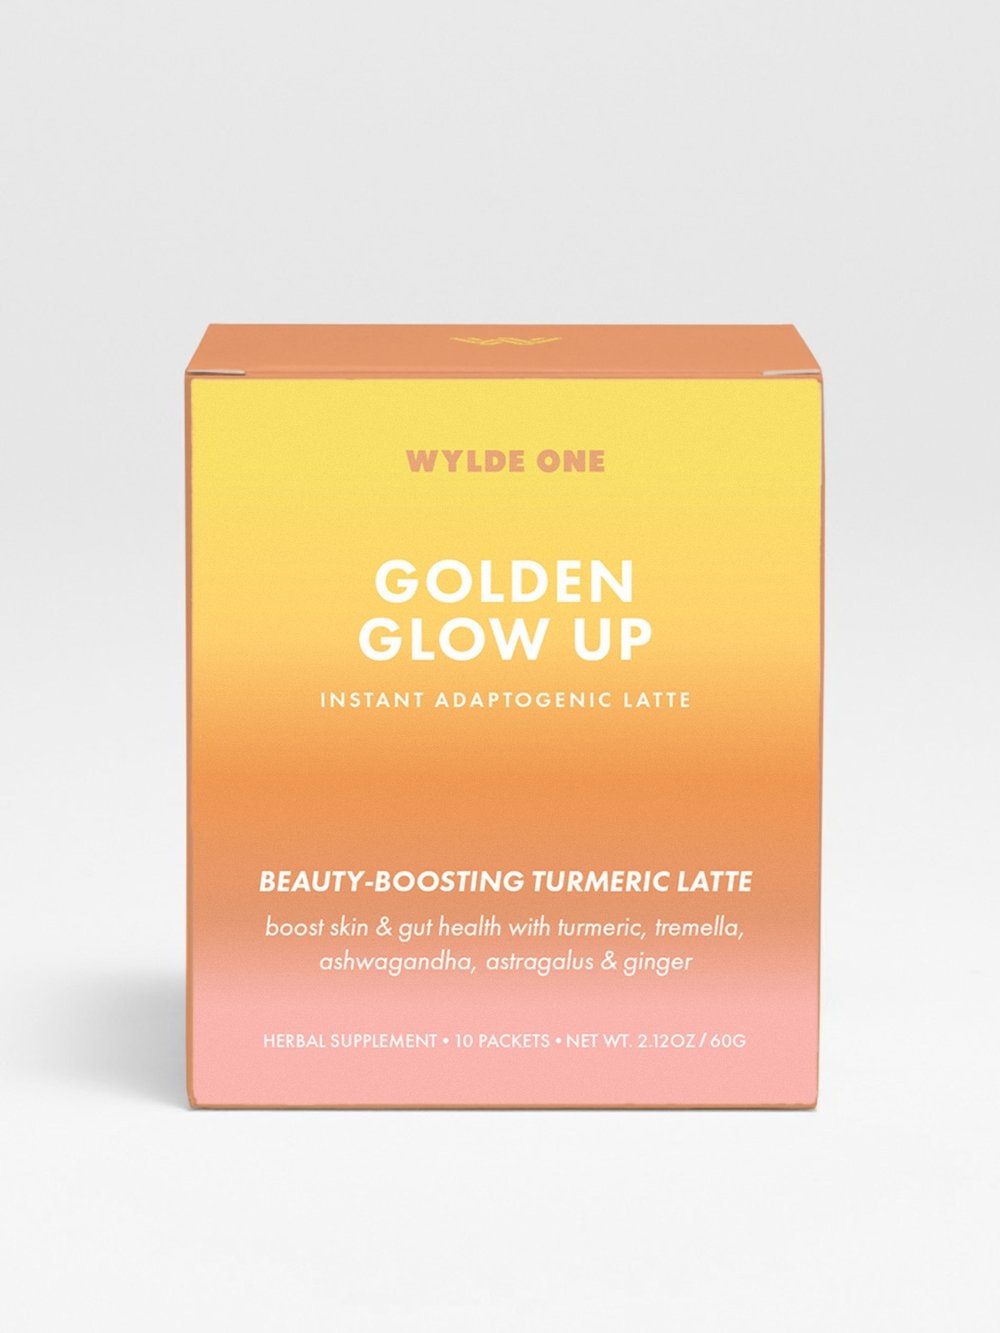 Golden Glow Up Instant Adaptogenic Latte